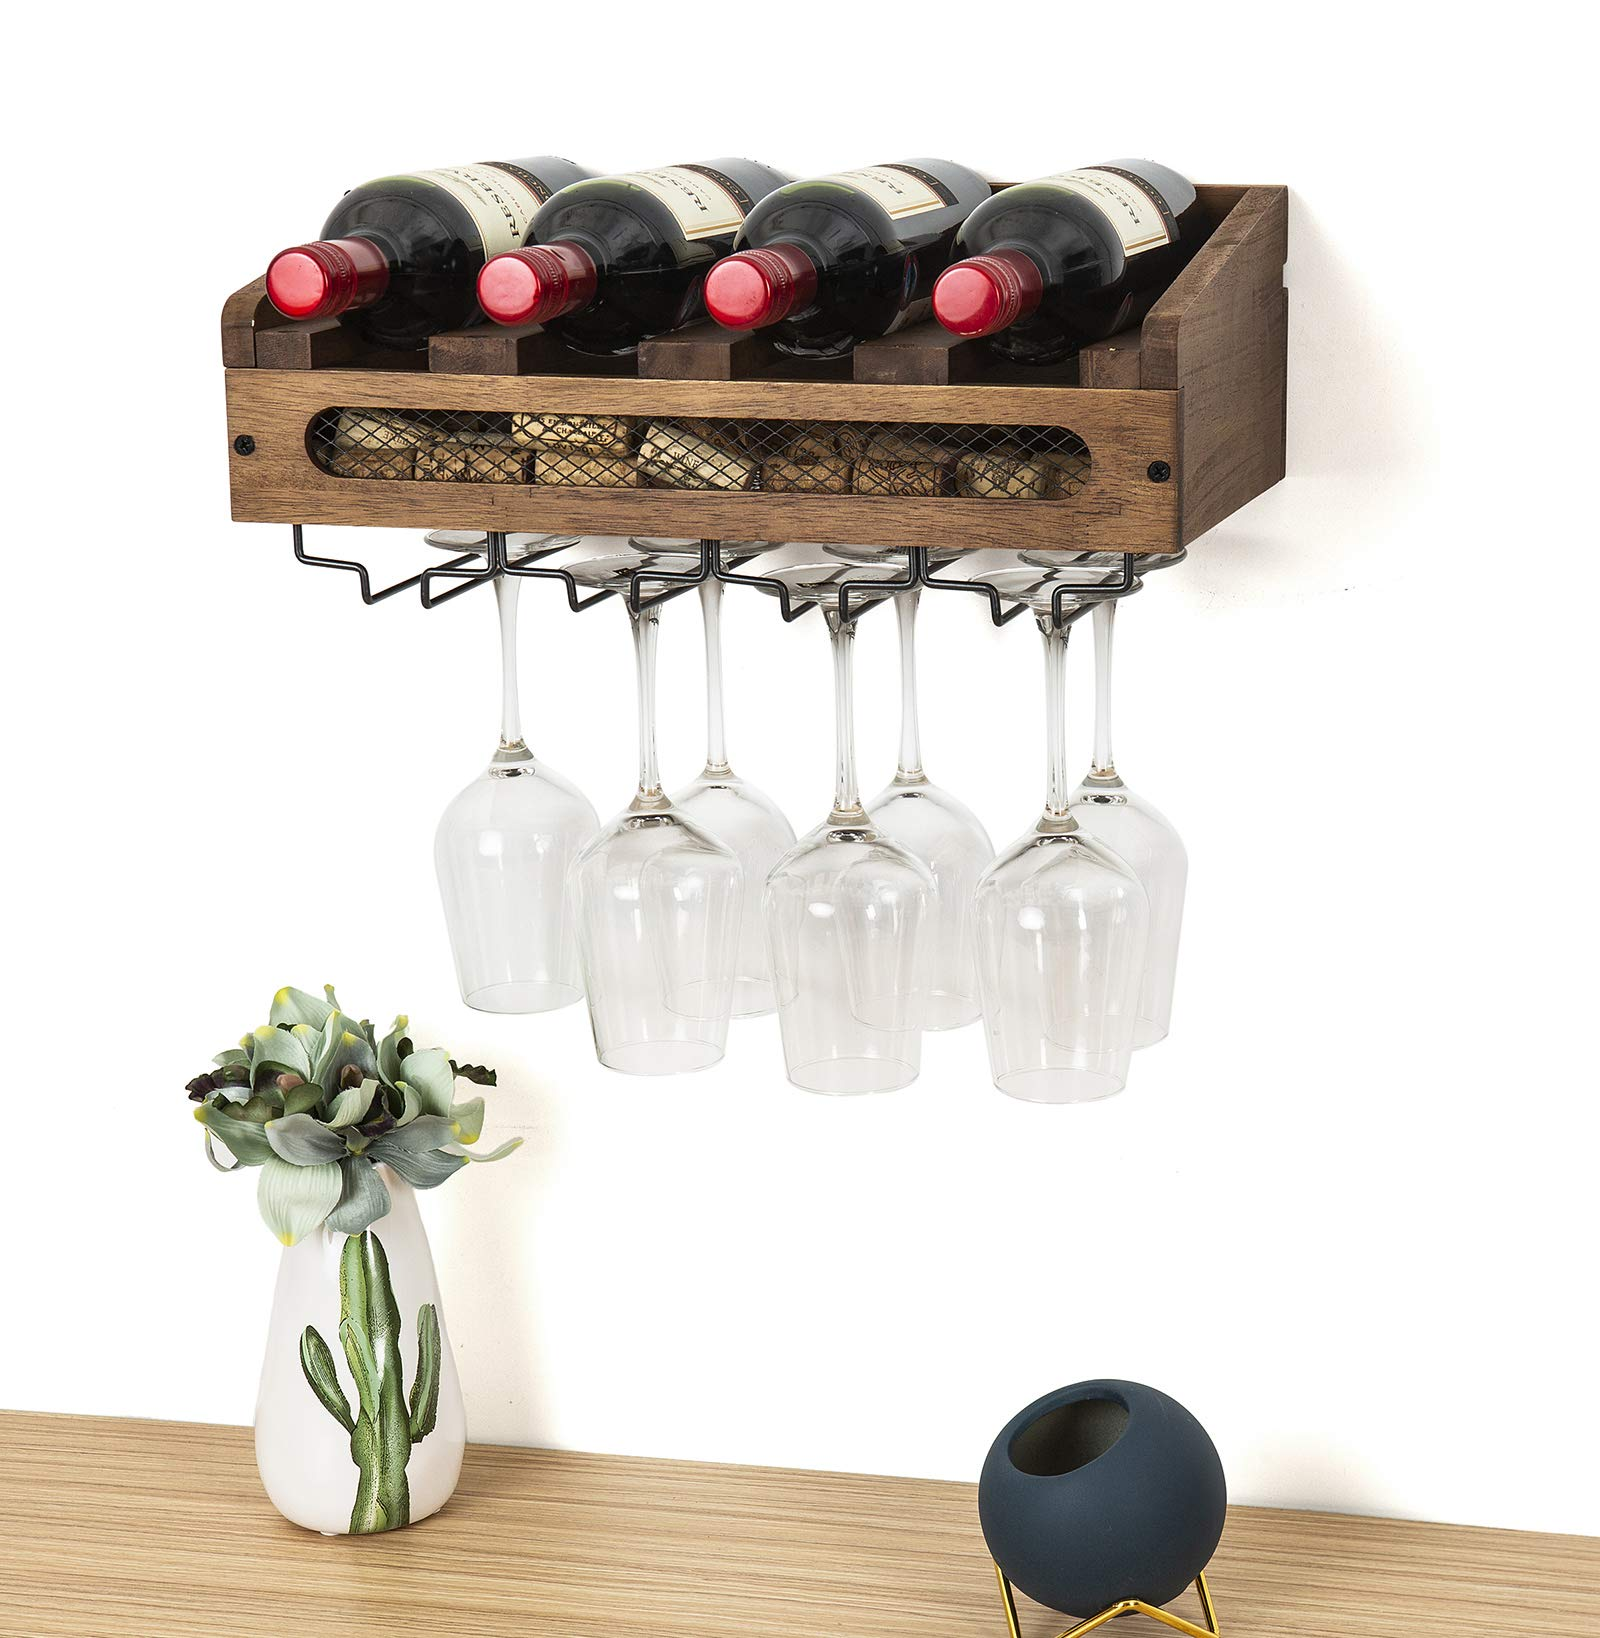 SODUKU Wall Mounted Wooden Wine Rack 4 Wine Bottles and 4 Long Stem Glasses Holder Wine Cork Storage Rack by SODUKU